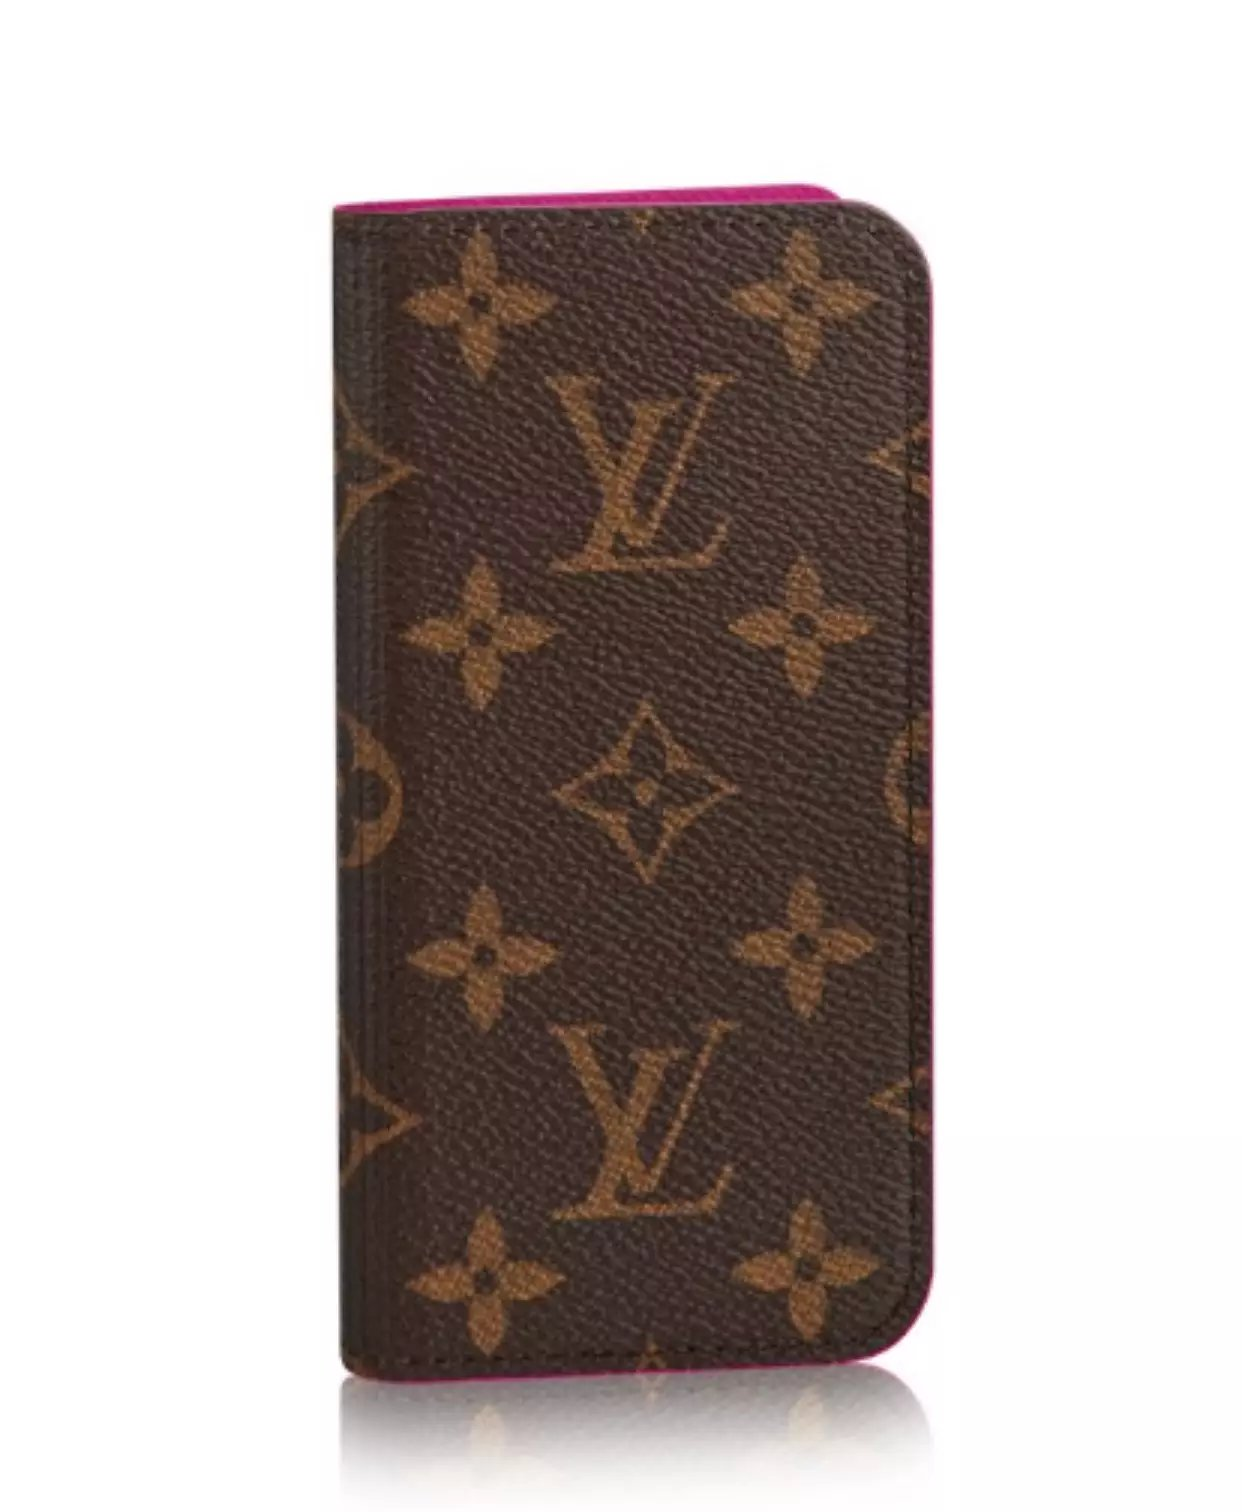 schutzhülle iphone iphone hülle holz Louis Vuitton iphone6 hülle outdoor cover iphone 6 samsung galaxy s3 ca6 6lbst gestalten handyhülle iphone 6  handyschalen mit eigenem foto handytasche iphone 6 cover für iphone